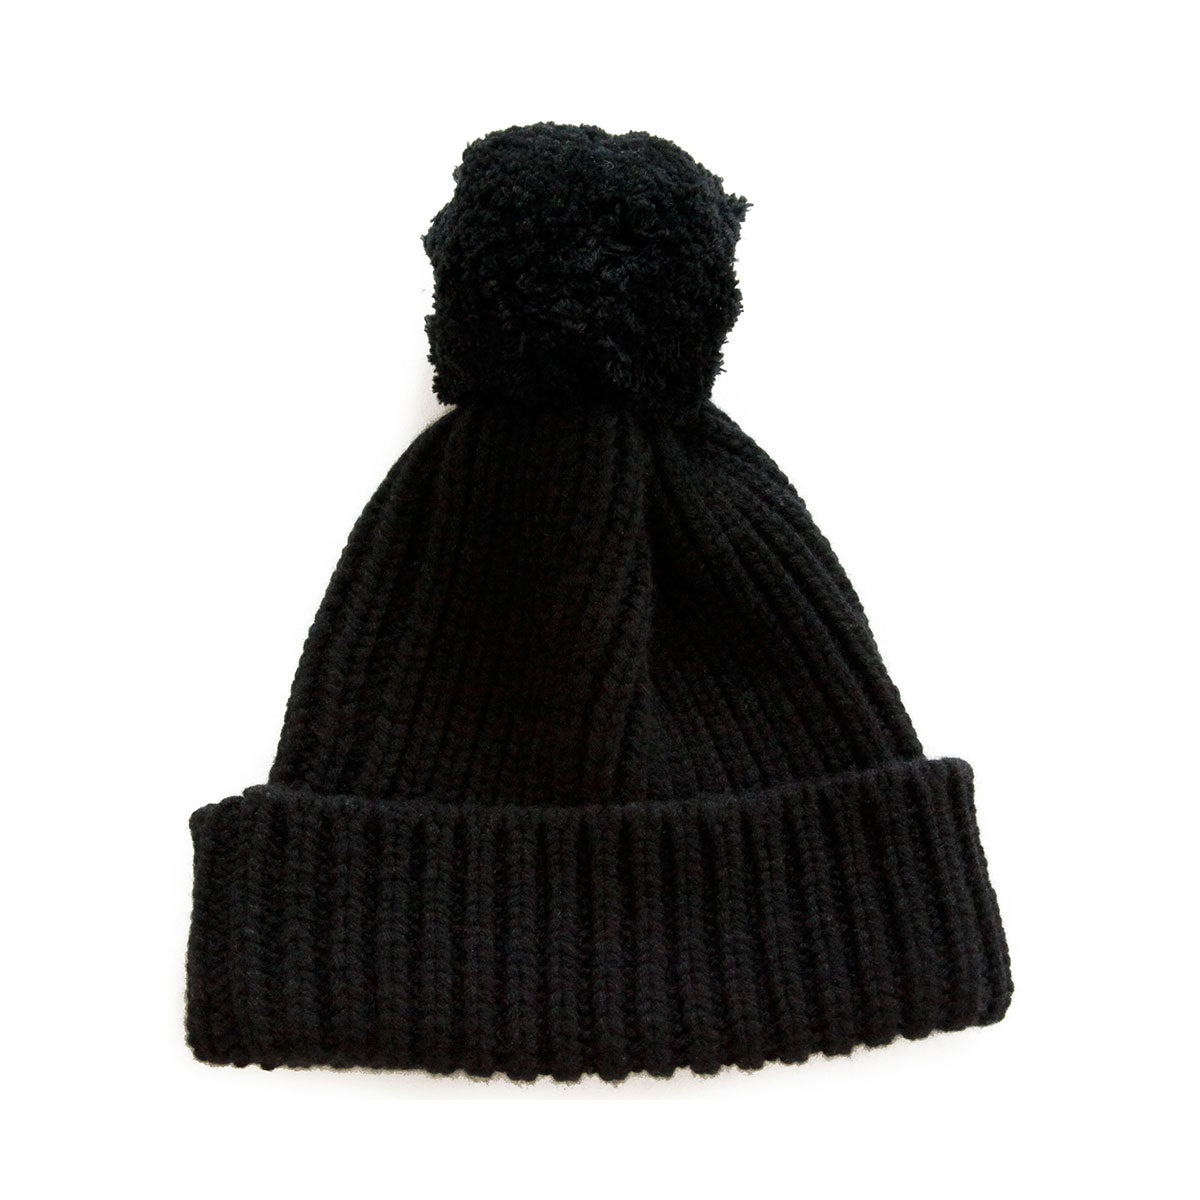 The Felix Cashmere Knit Hat